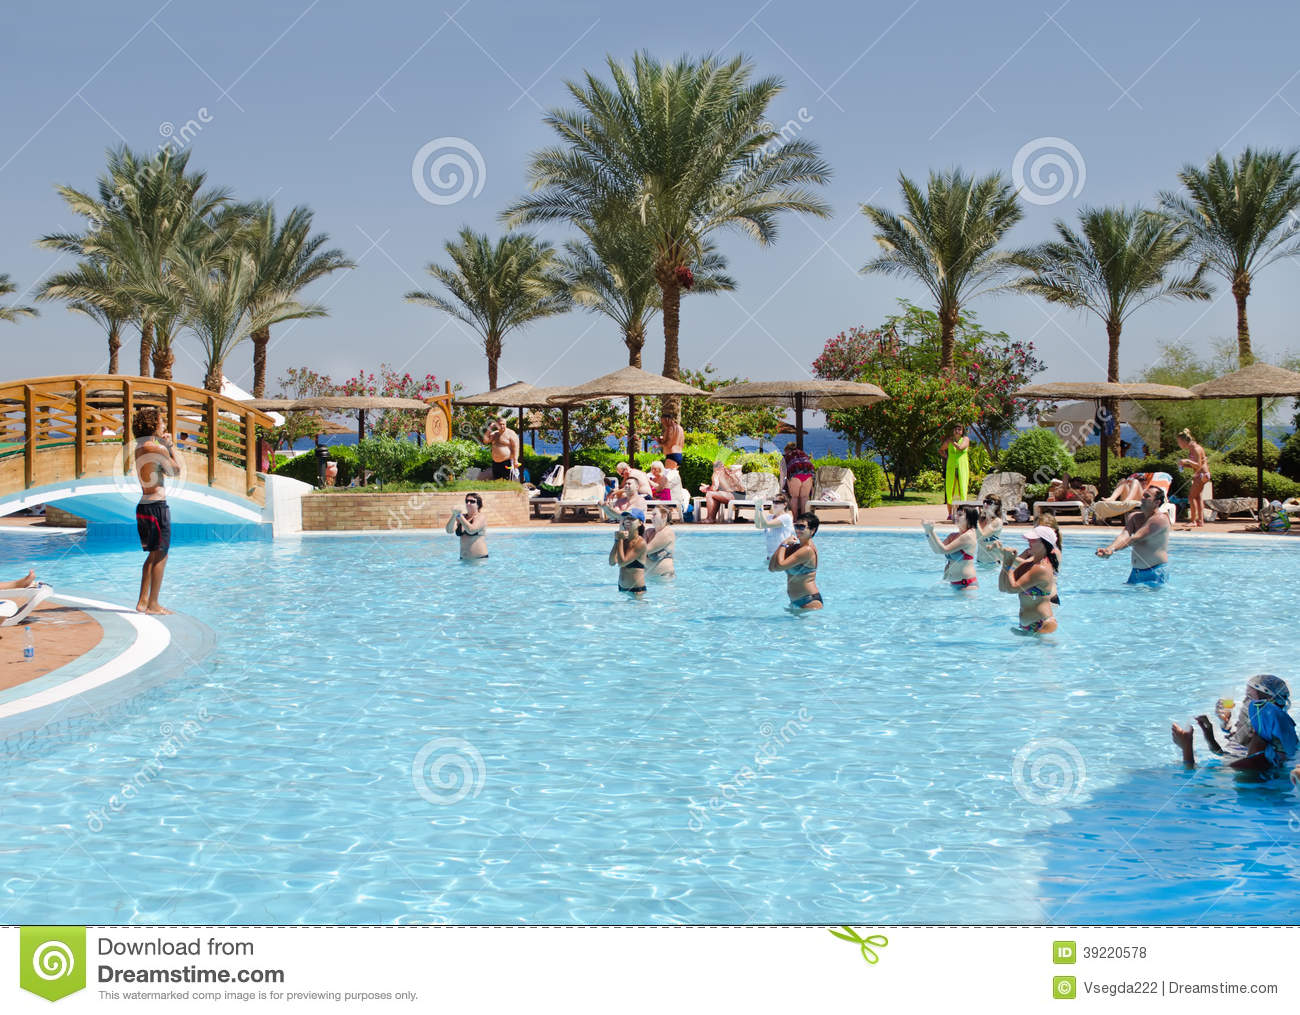 Hotel pool with people  People Swimming In The Pool Editorial Photography - Image: 57704272